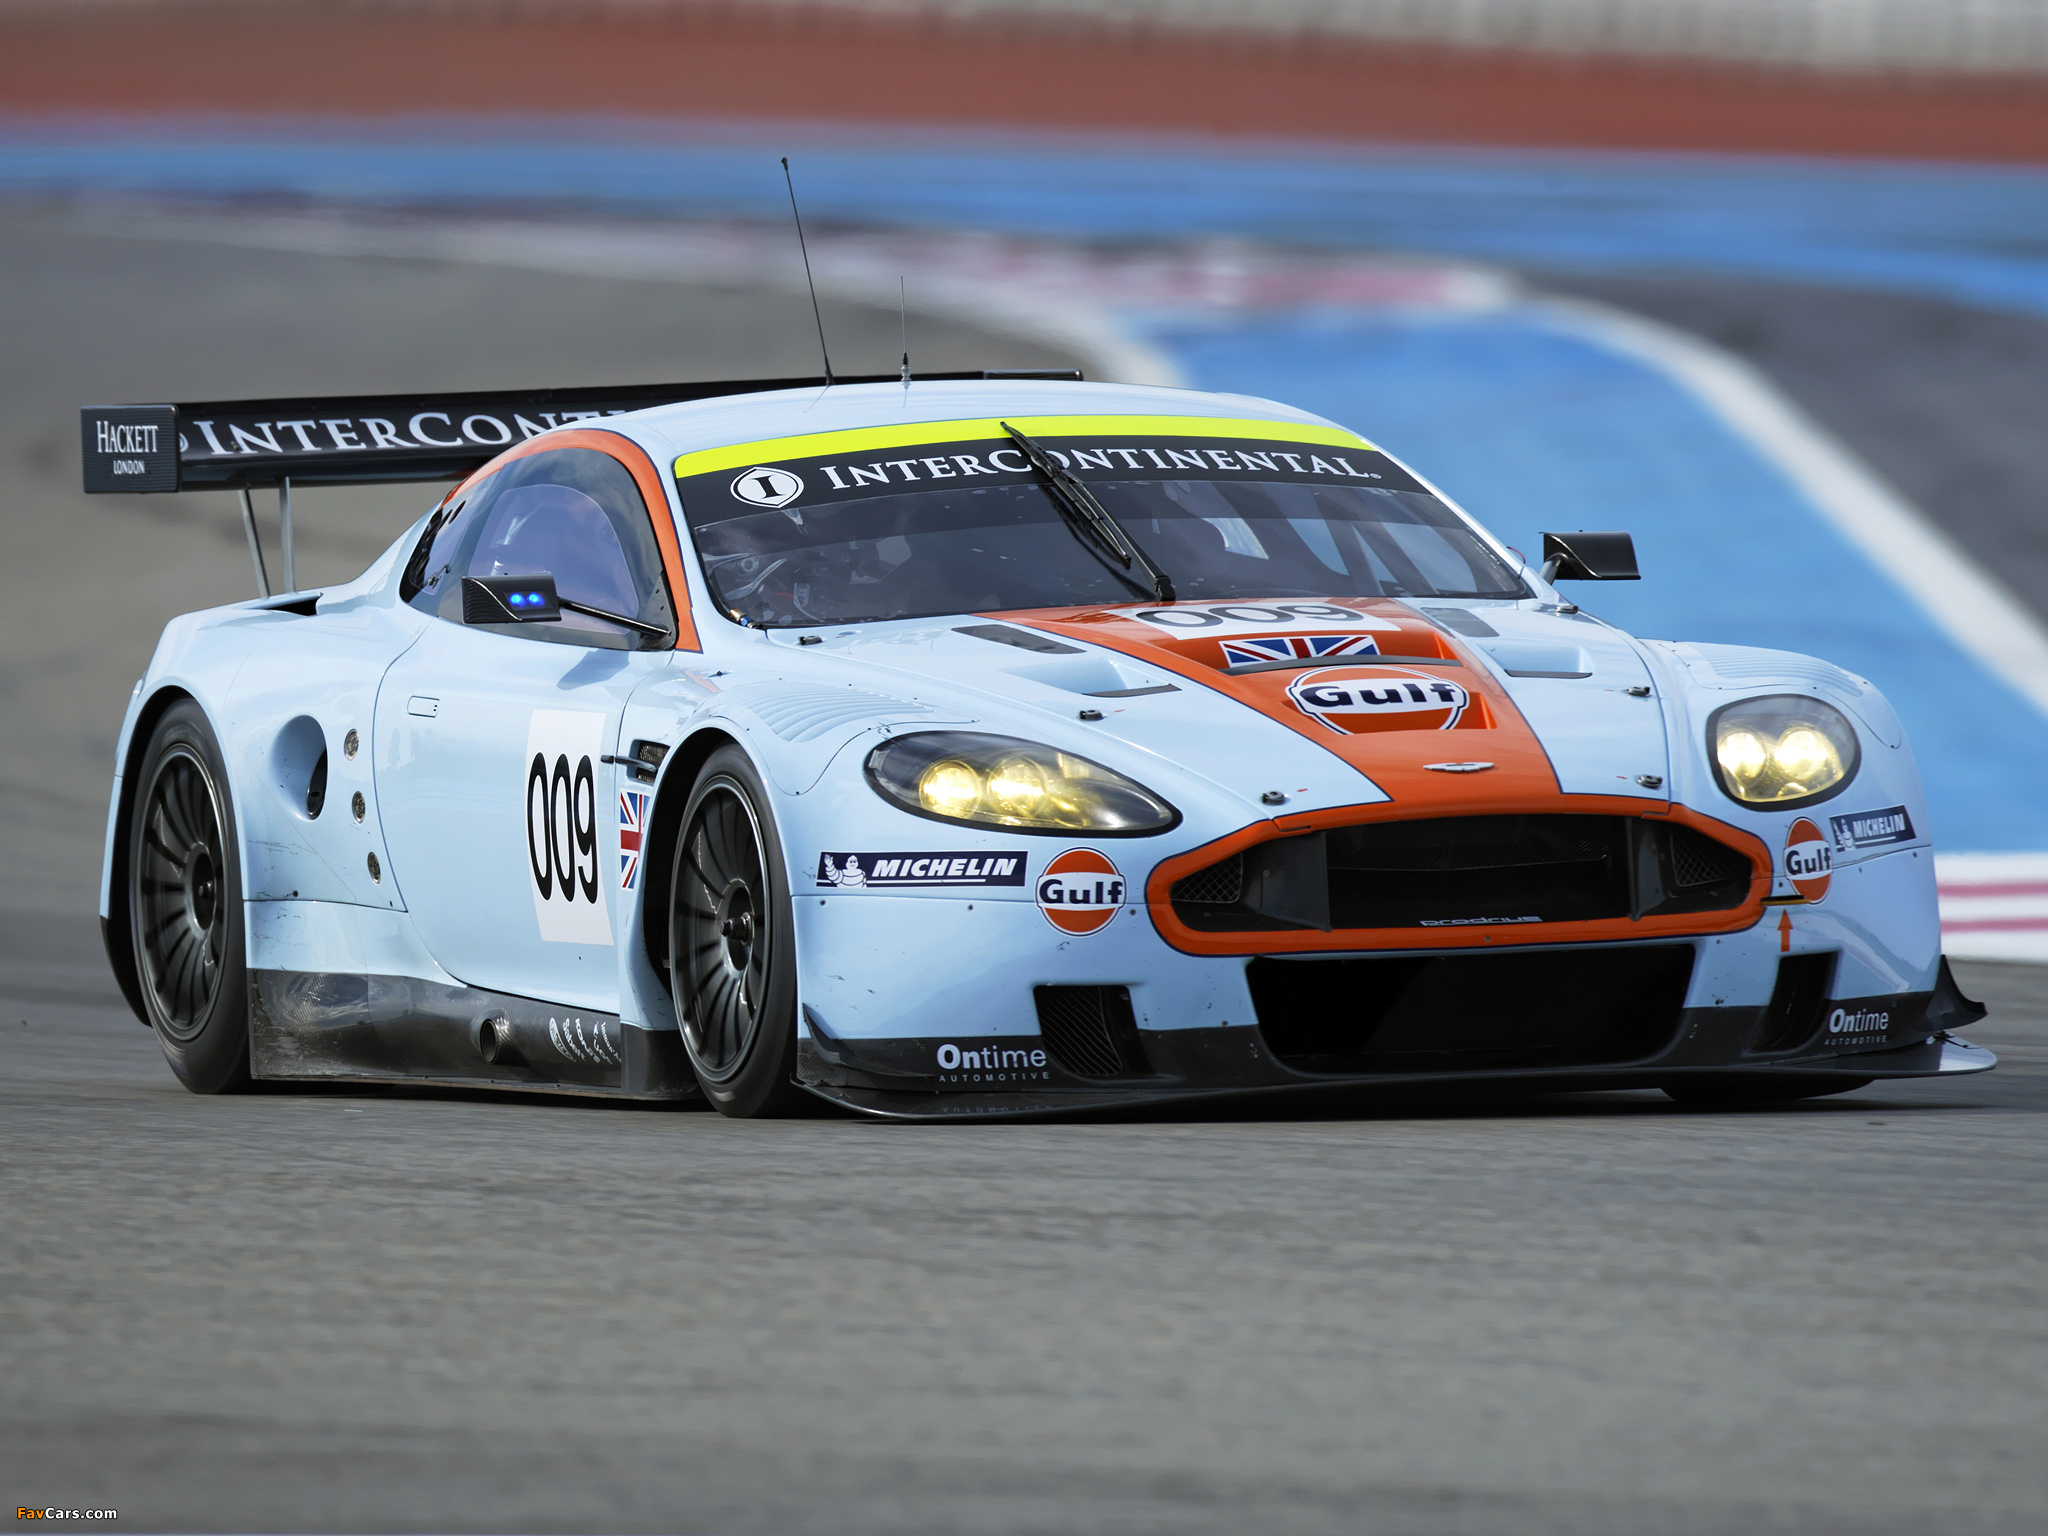 2008 aston martin db9 with Wallpapers Aston Martin Dbr9 Gulf Oil Livery 2008 100362 on Prdview big 258418 moreover The Cars Of Kanye West additionally Fisker Surf besides Isuzu D Max additionally 60289.